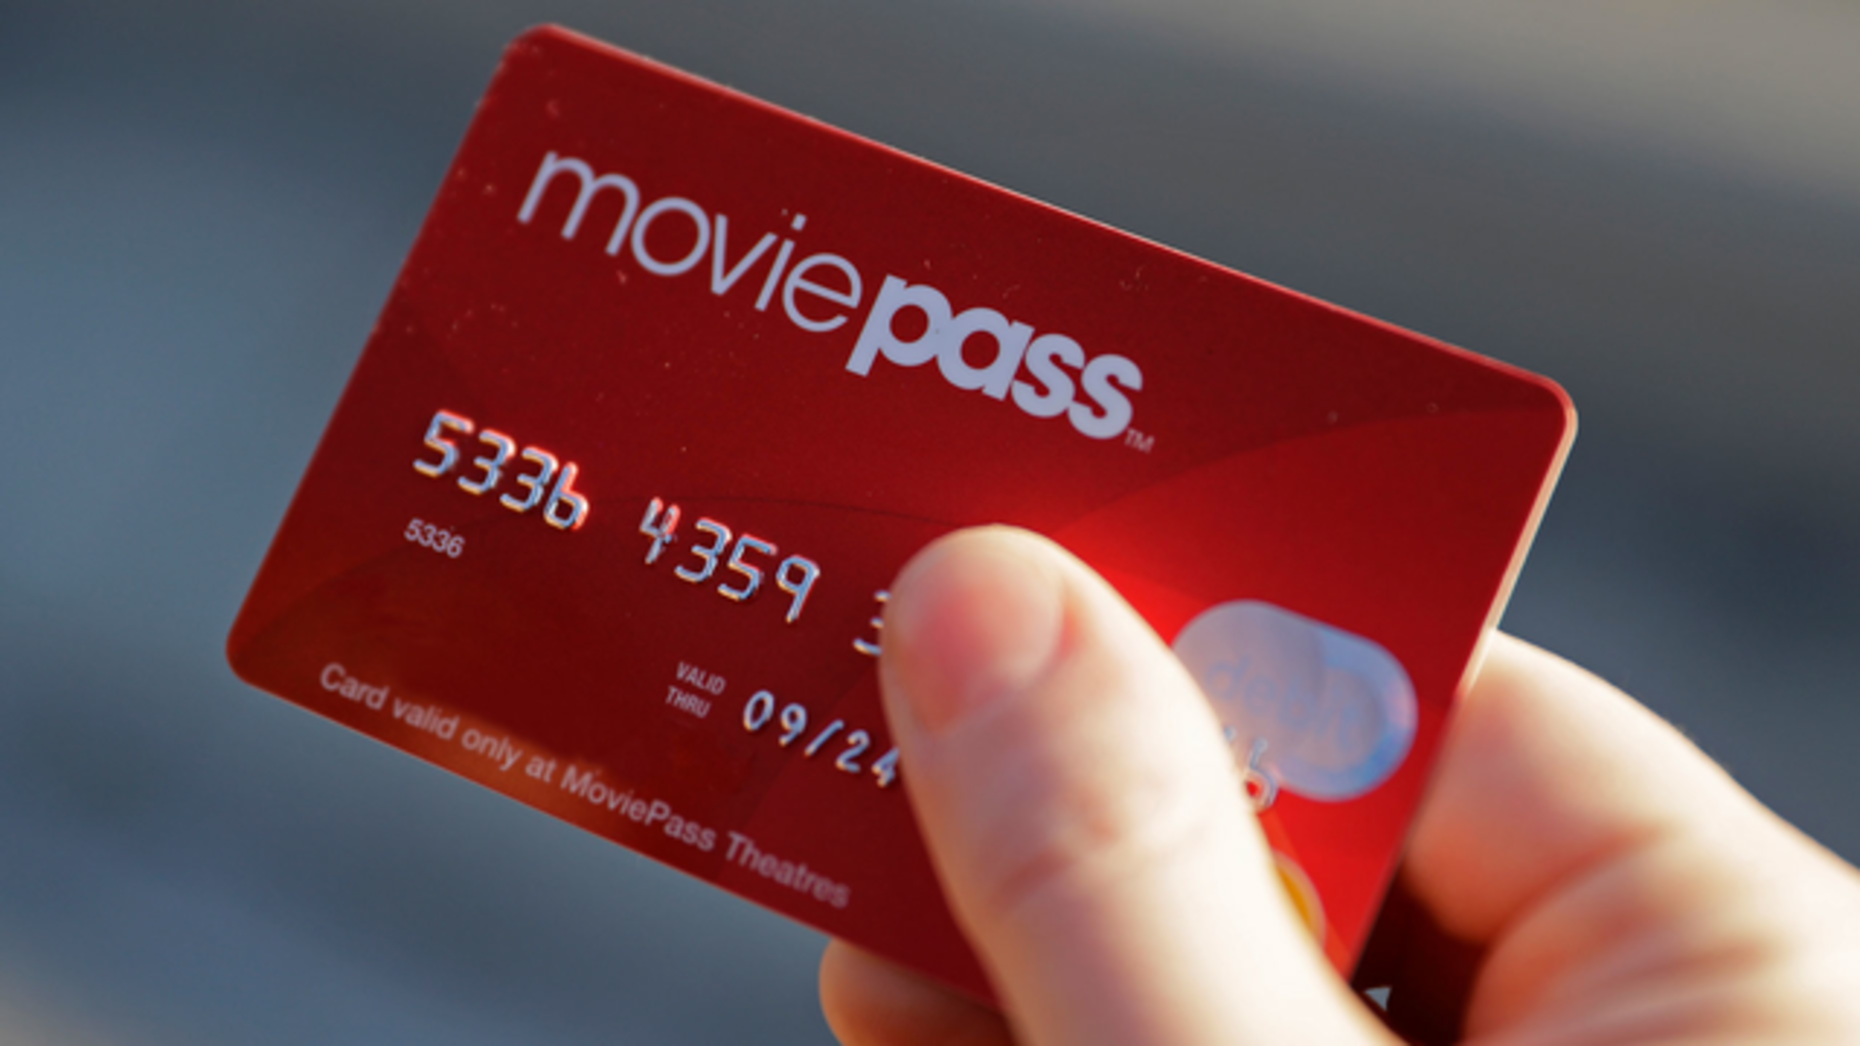 A MoviePass card. Photo by AP